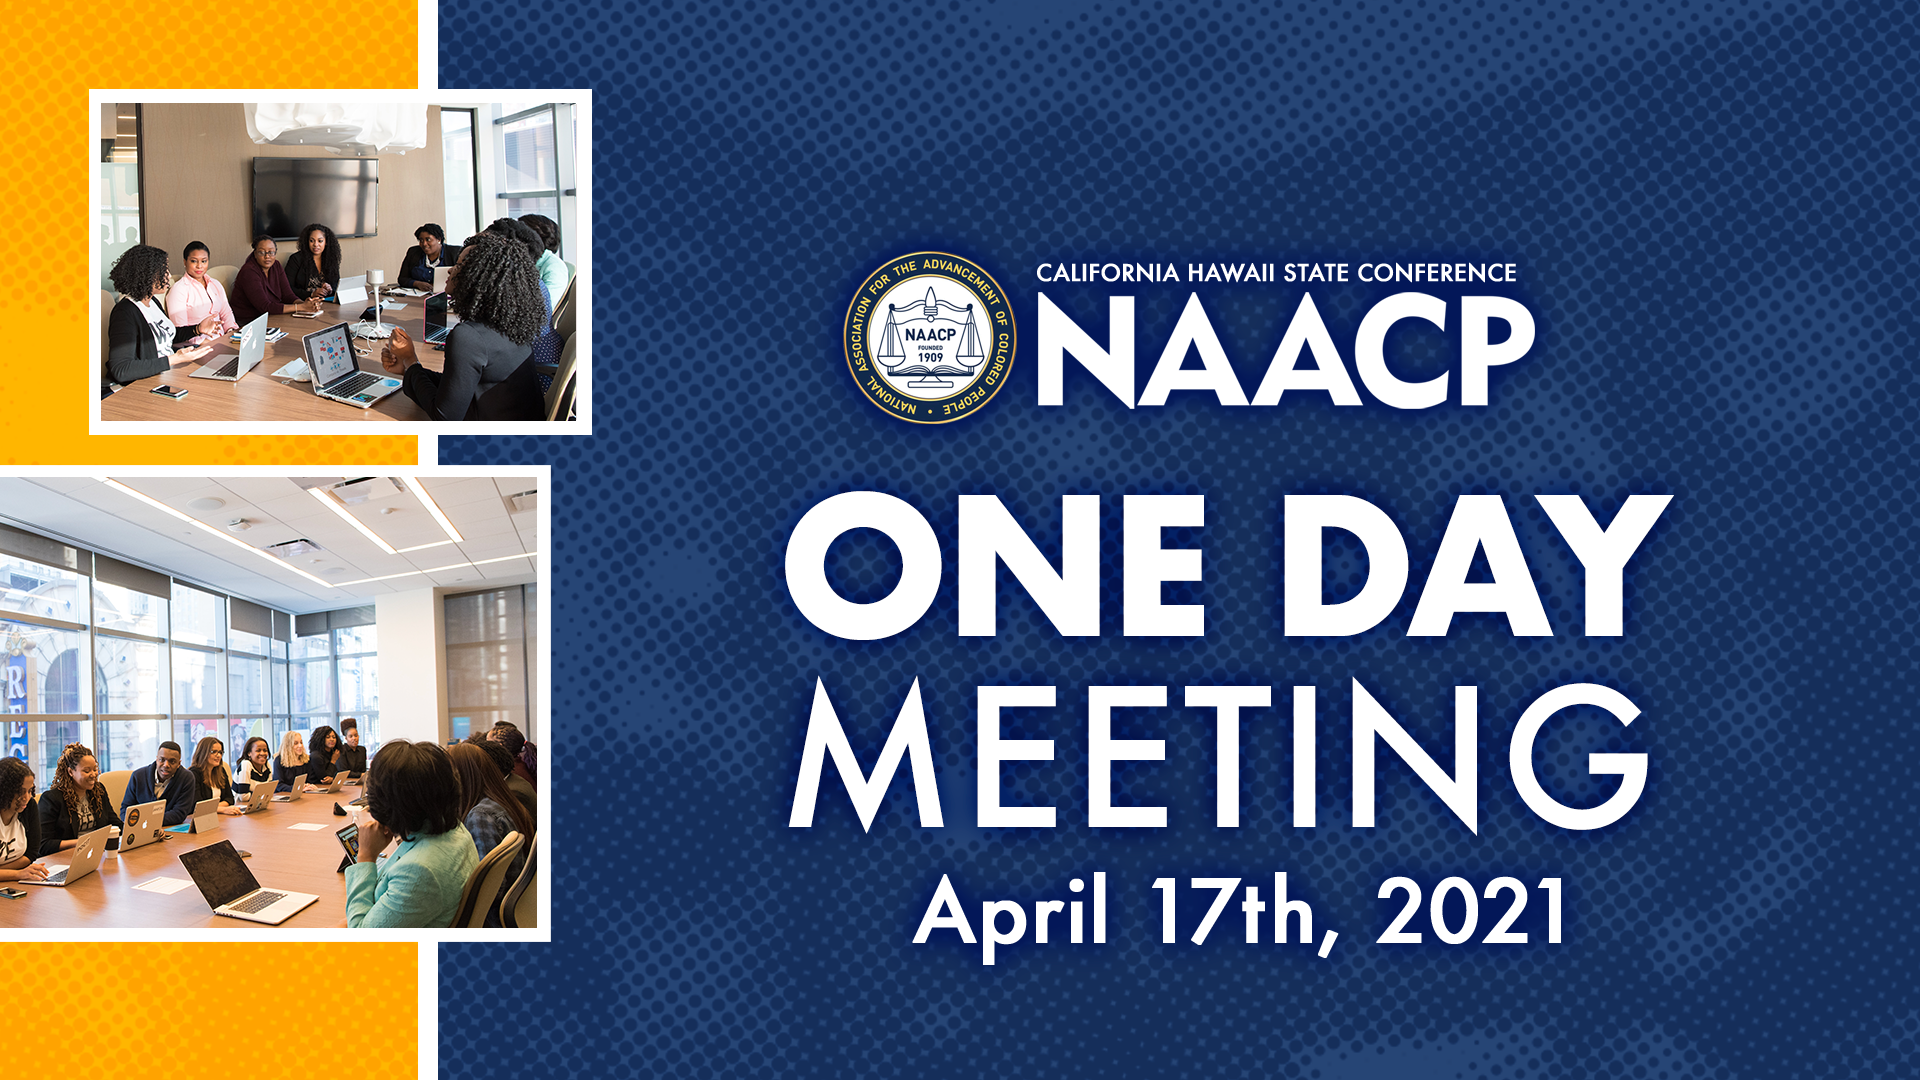 California NAACP One Day Spring Meeting